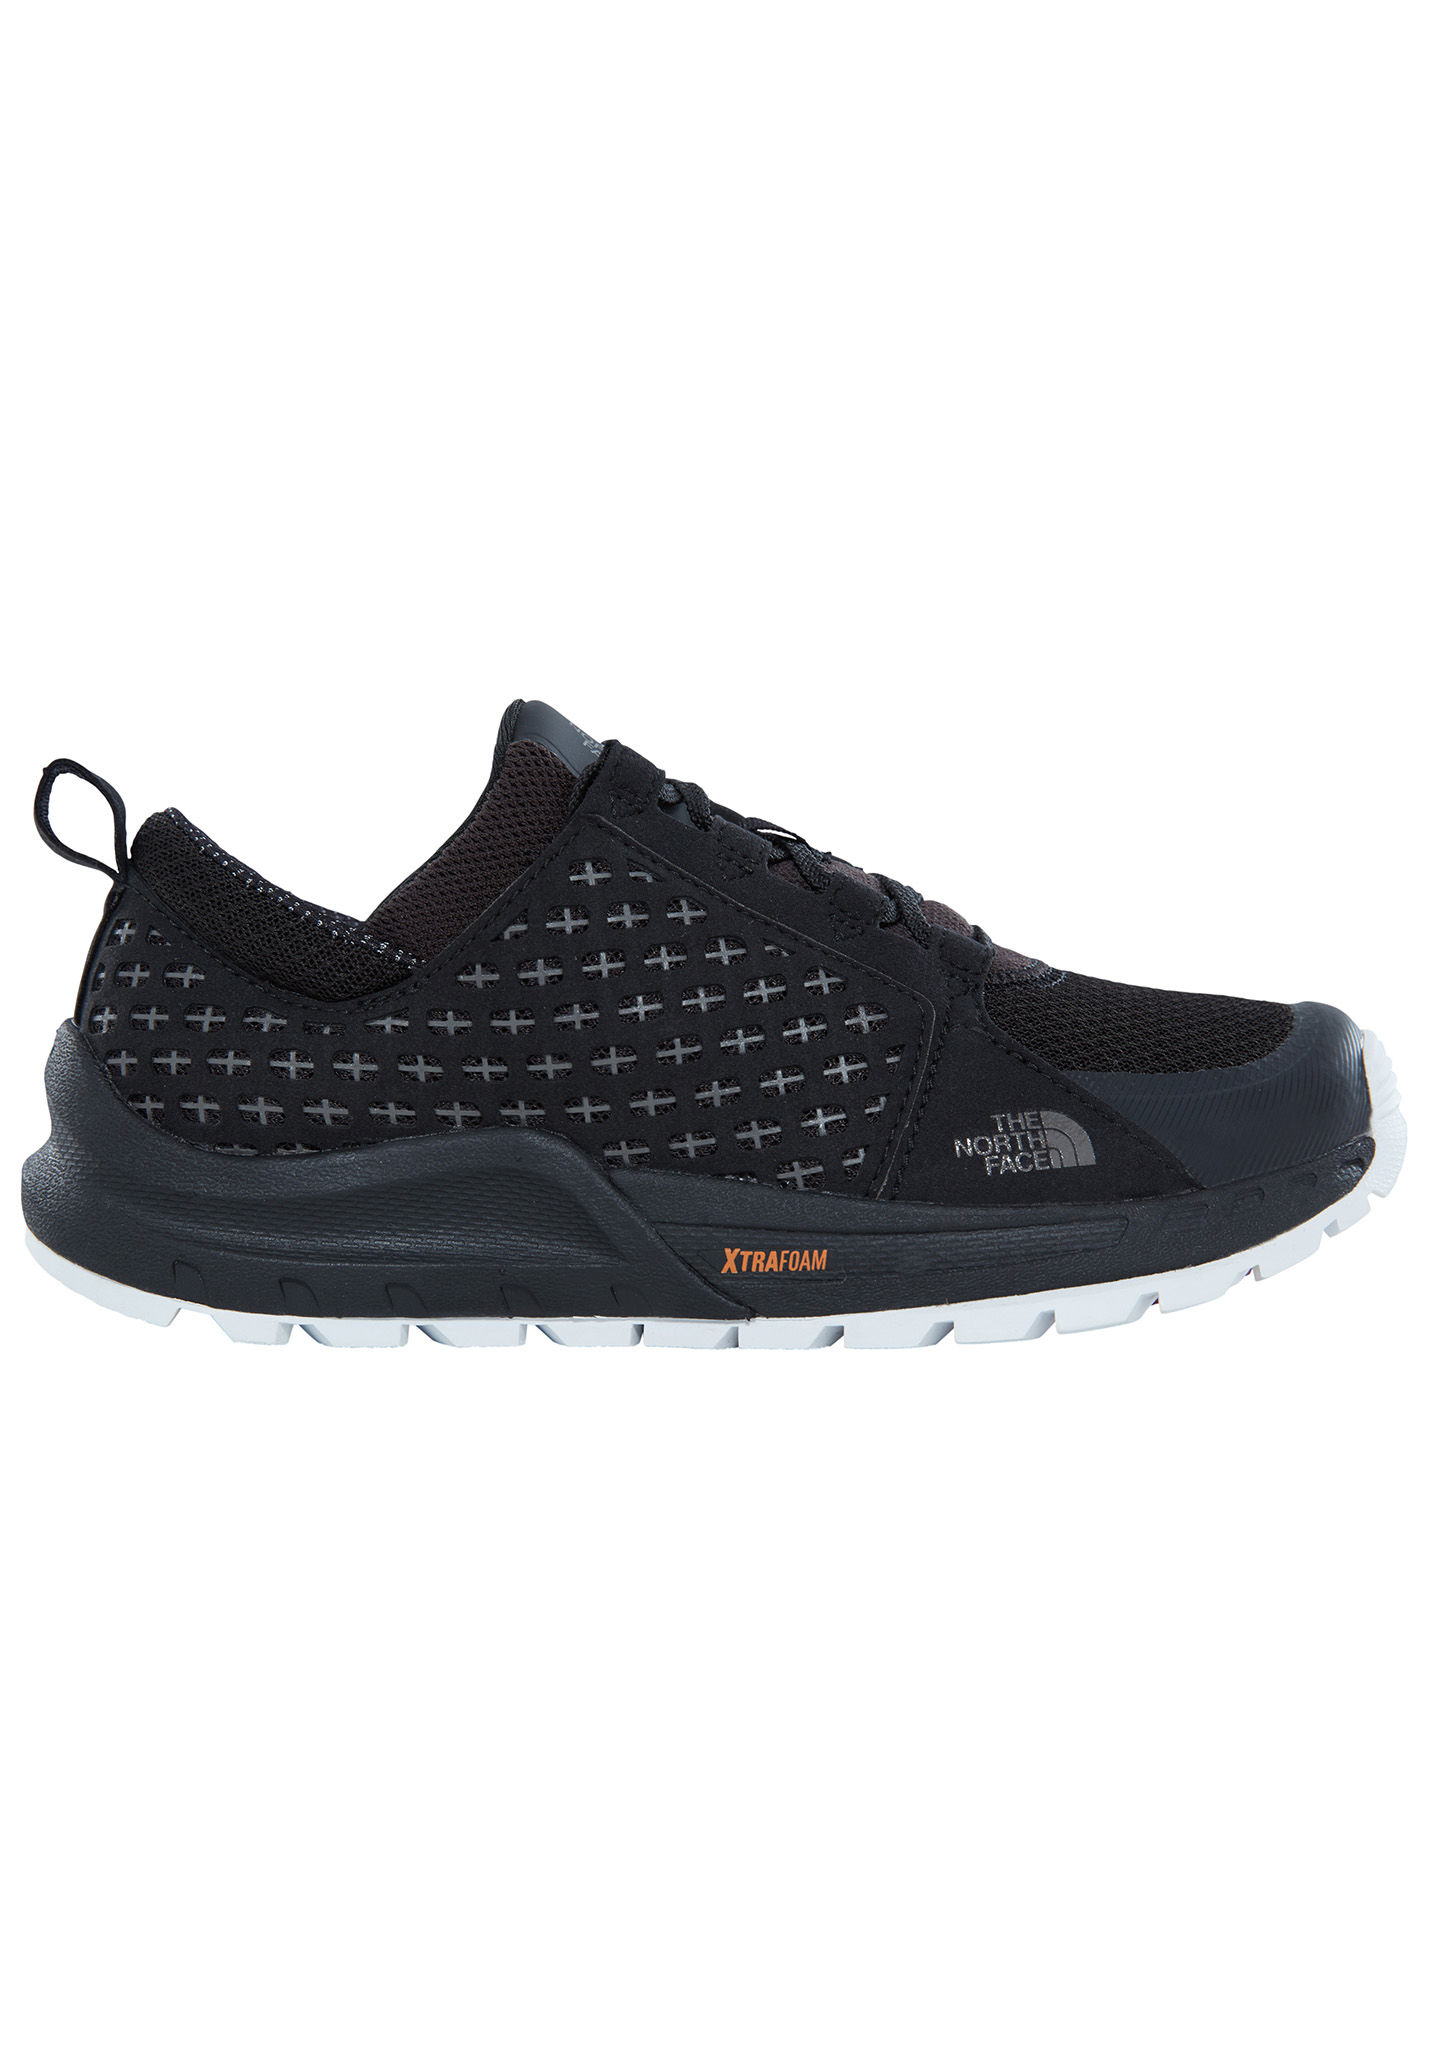 THE NORTH FACE Mountain Sneaker - Hiking Shoes for Women - Black - Planet  Sports 3b3edcedca